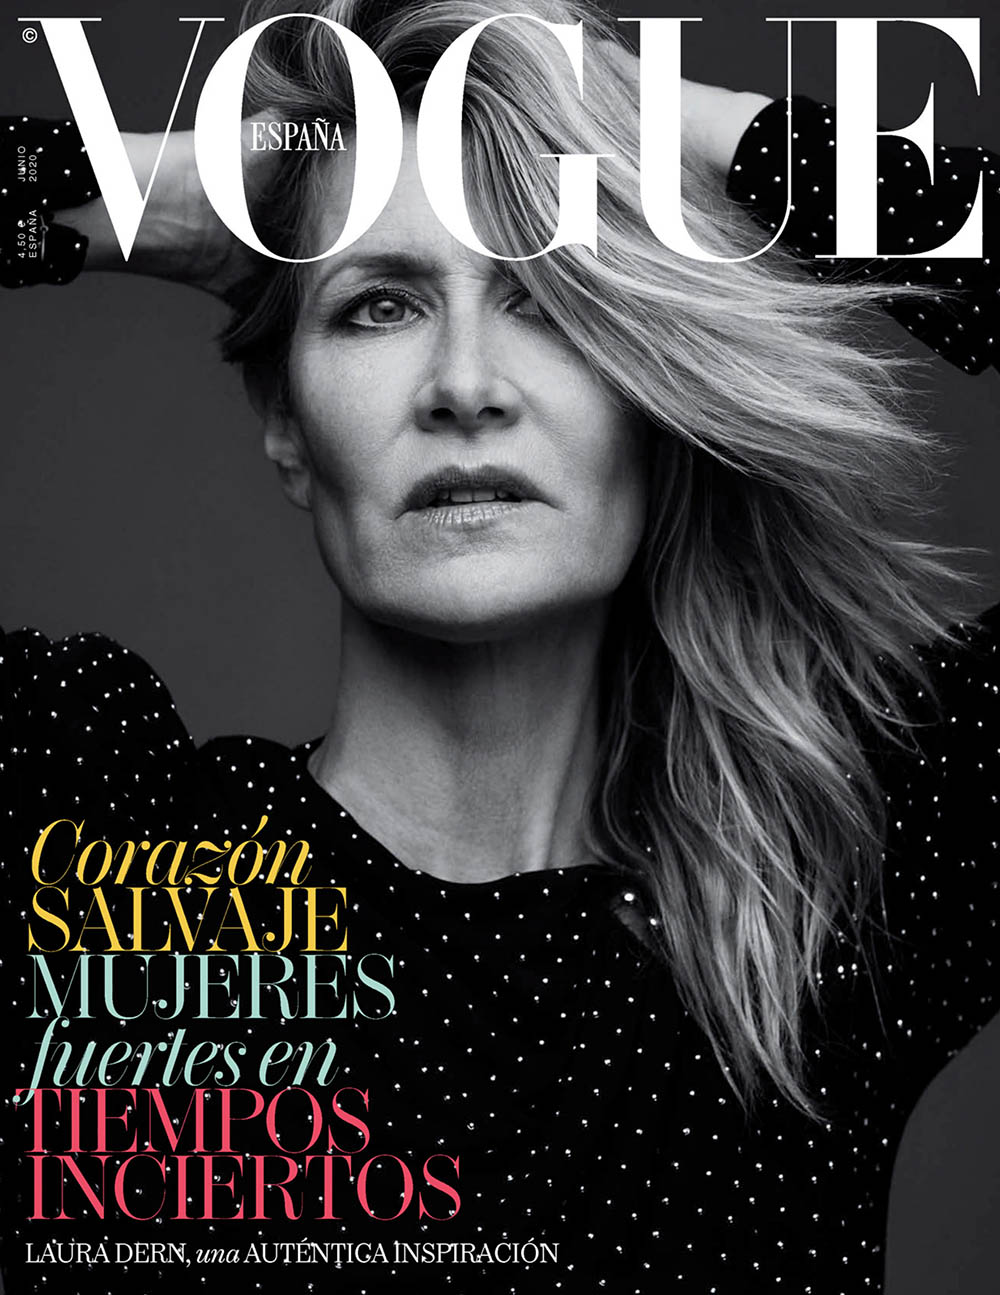 Laura Dern covers Vogue Spain June 2020 by Alexi Lubomirski